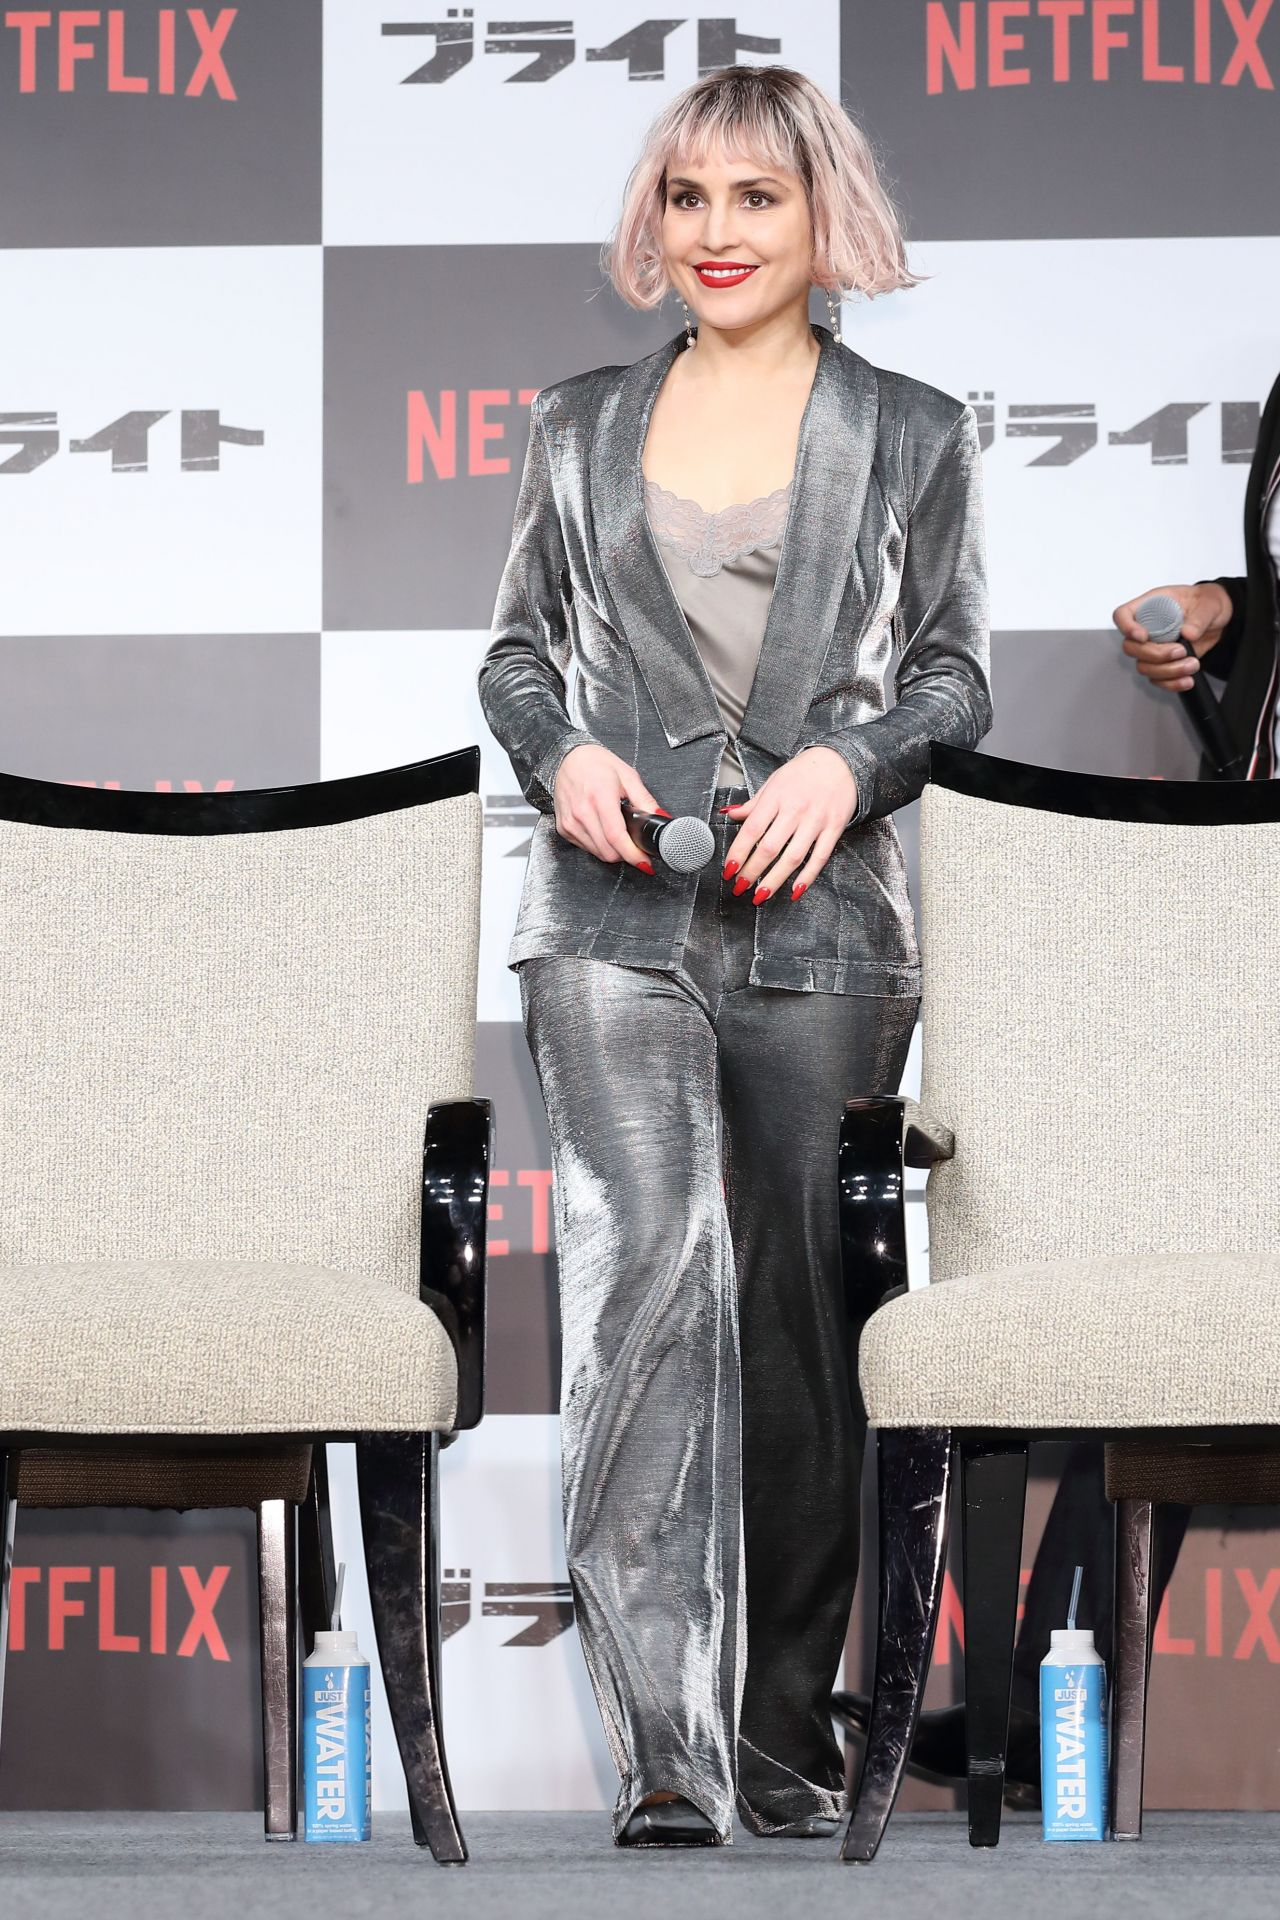 http://celebmafia.com/wp-content/uploads/2017/12/noomi-rapace-bright-photocall-and-premiere-in-tokyo-7.jpg